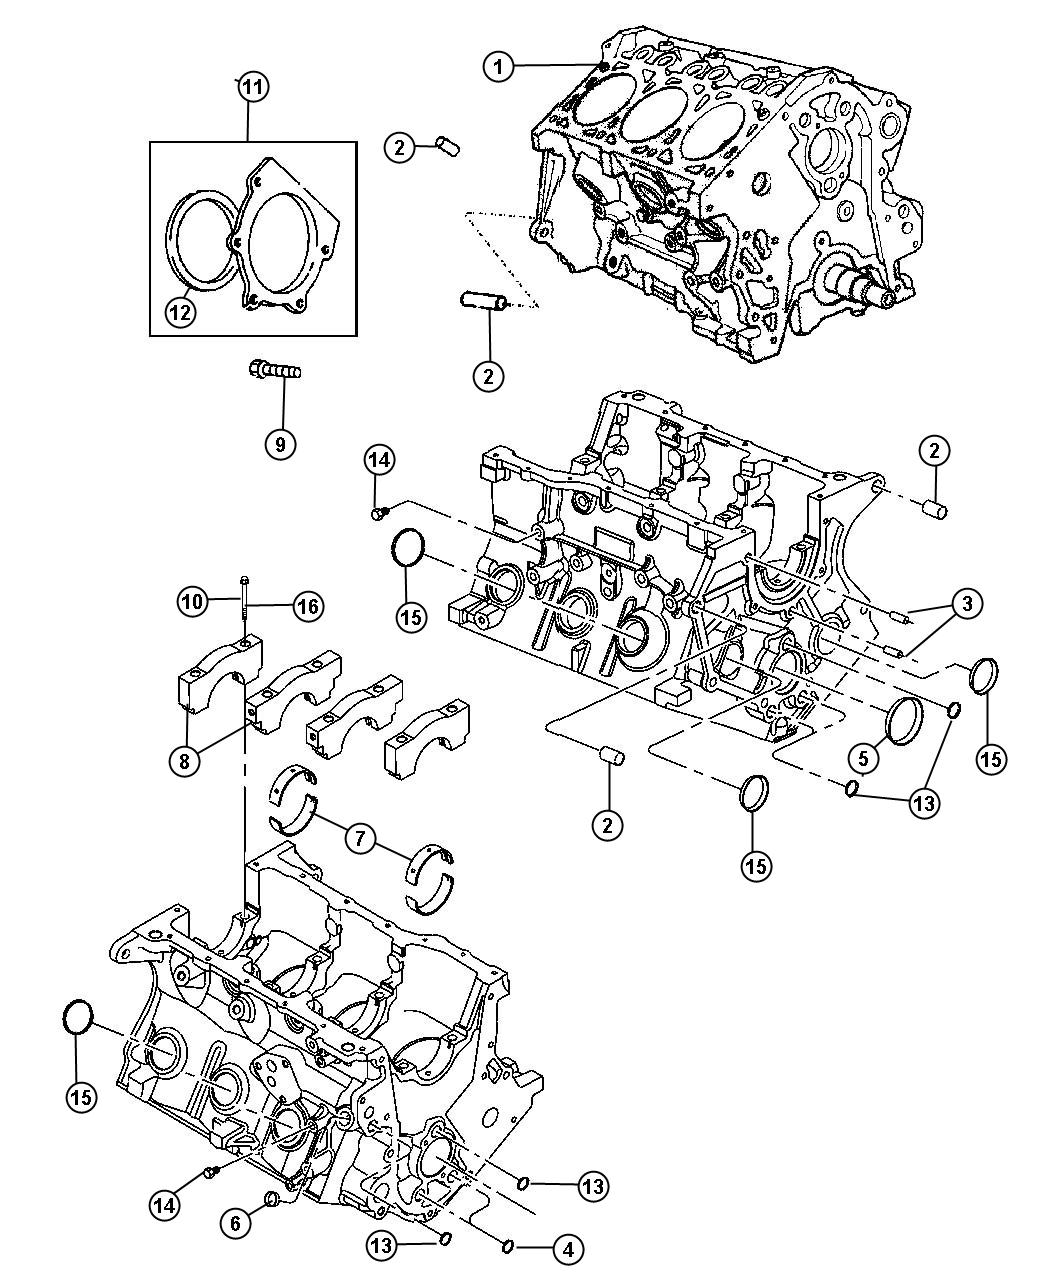 tags: #inline 4 cylindersel engines#4 cylinder engine drawing#opposed 4 cylinder  engine drawing#inline 4 cylinder engine#4 cylinder engine schematics#4